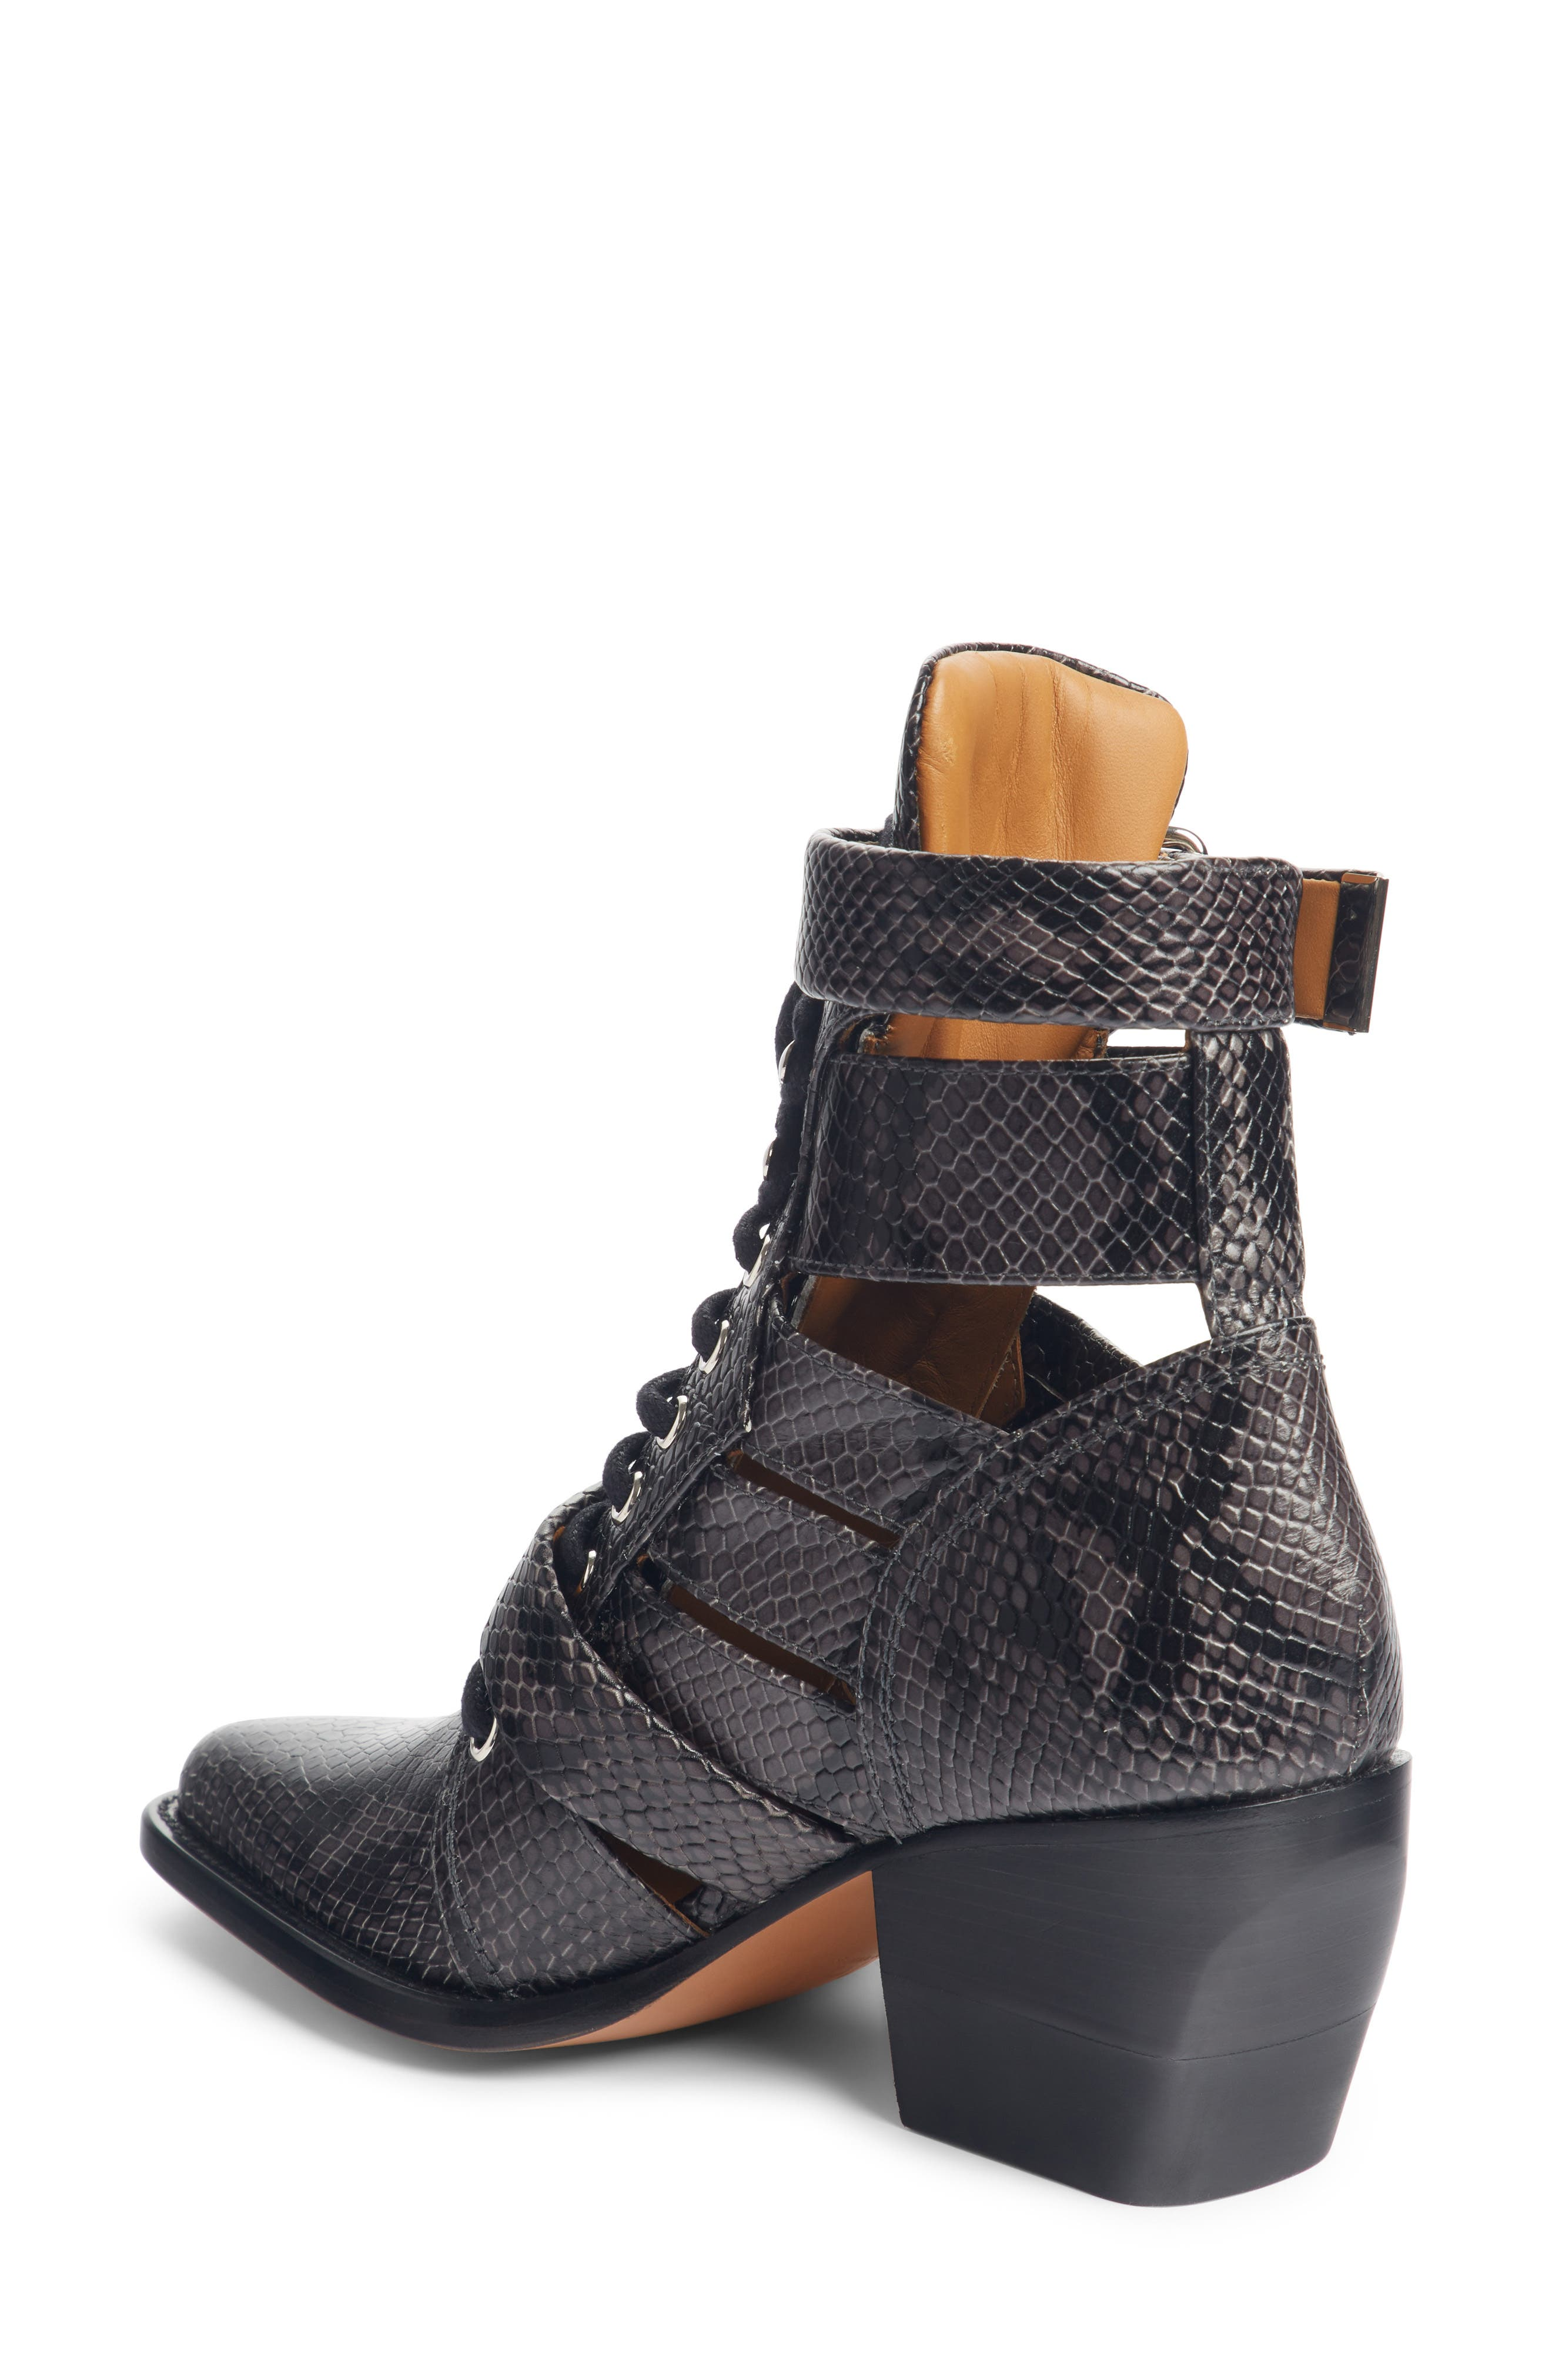 CHLOÉ, Rylee Caged Pointy Toe Boot, Alternate thumbnail 2, color, CHARCOAL BLACK